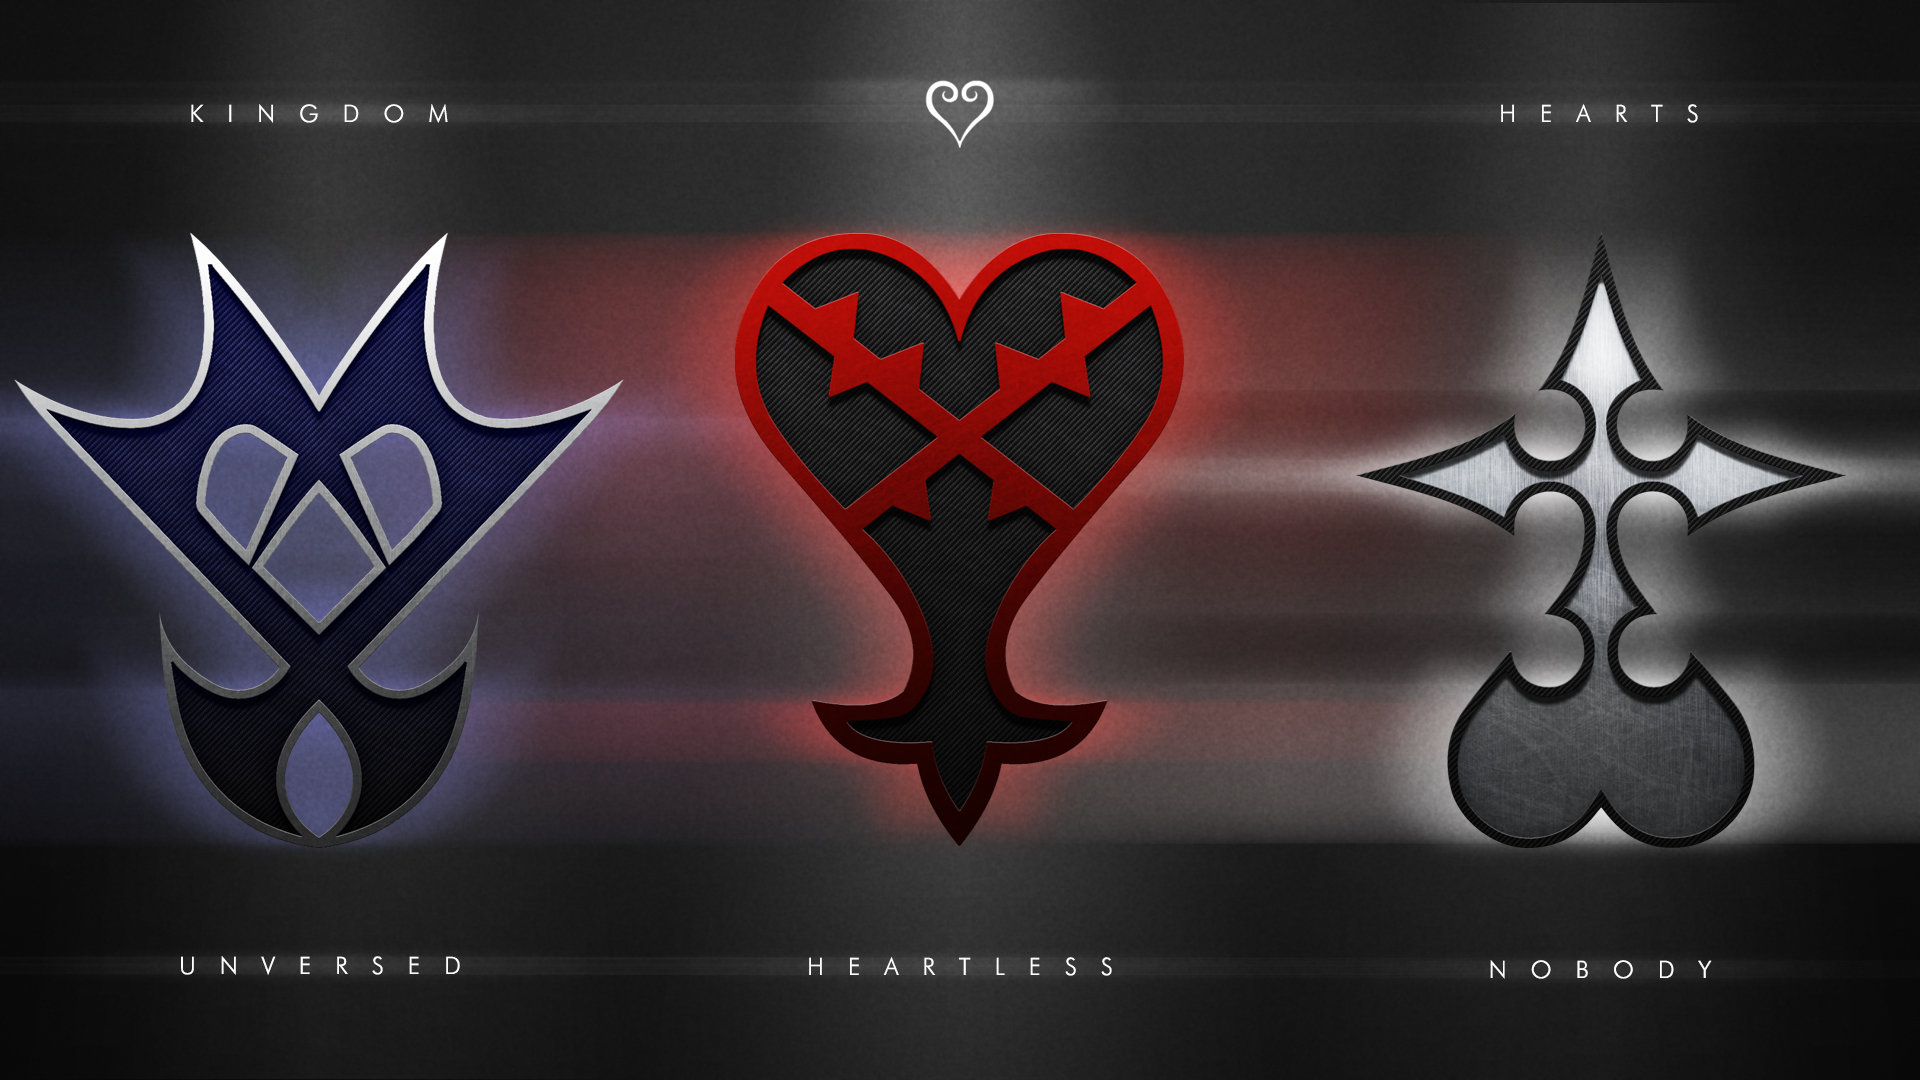 Kingdom Hearts Emblems Wallpaper by Pencil X Paper 1920x1080